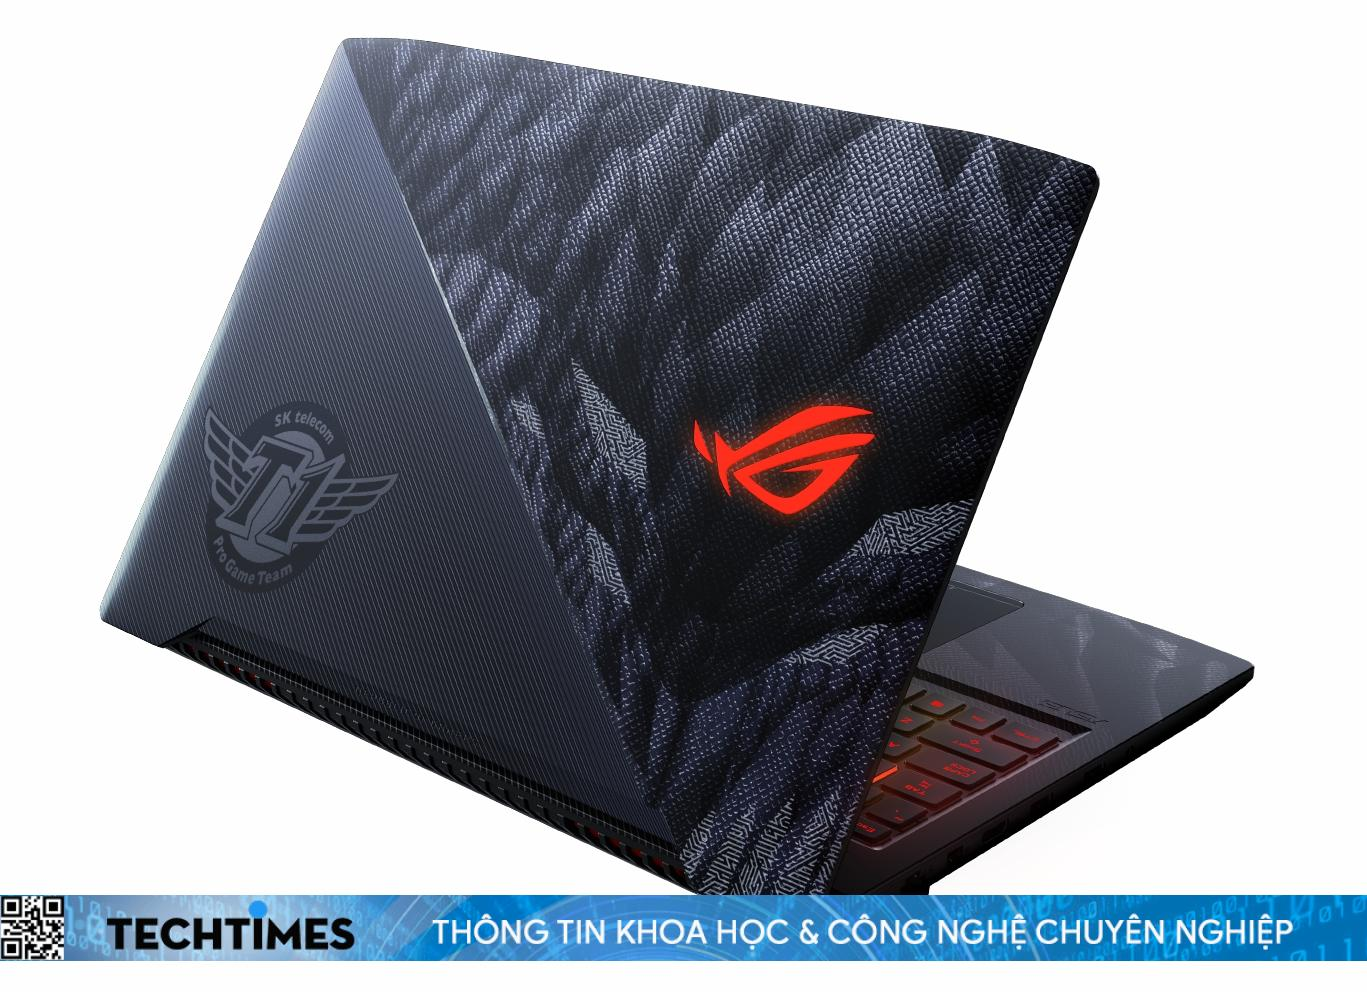 Strix SKT T1 Hero GL503VM-GZ254T